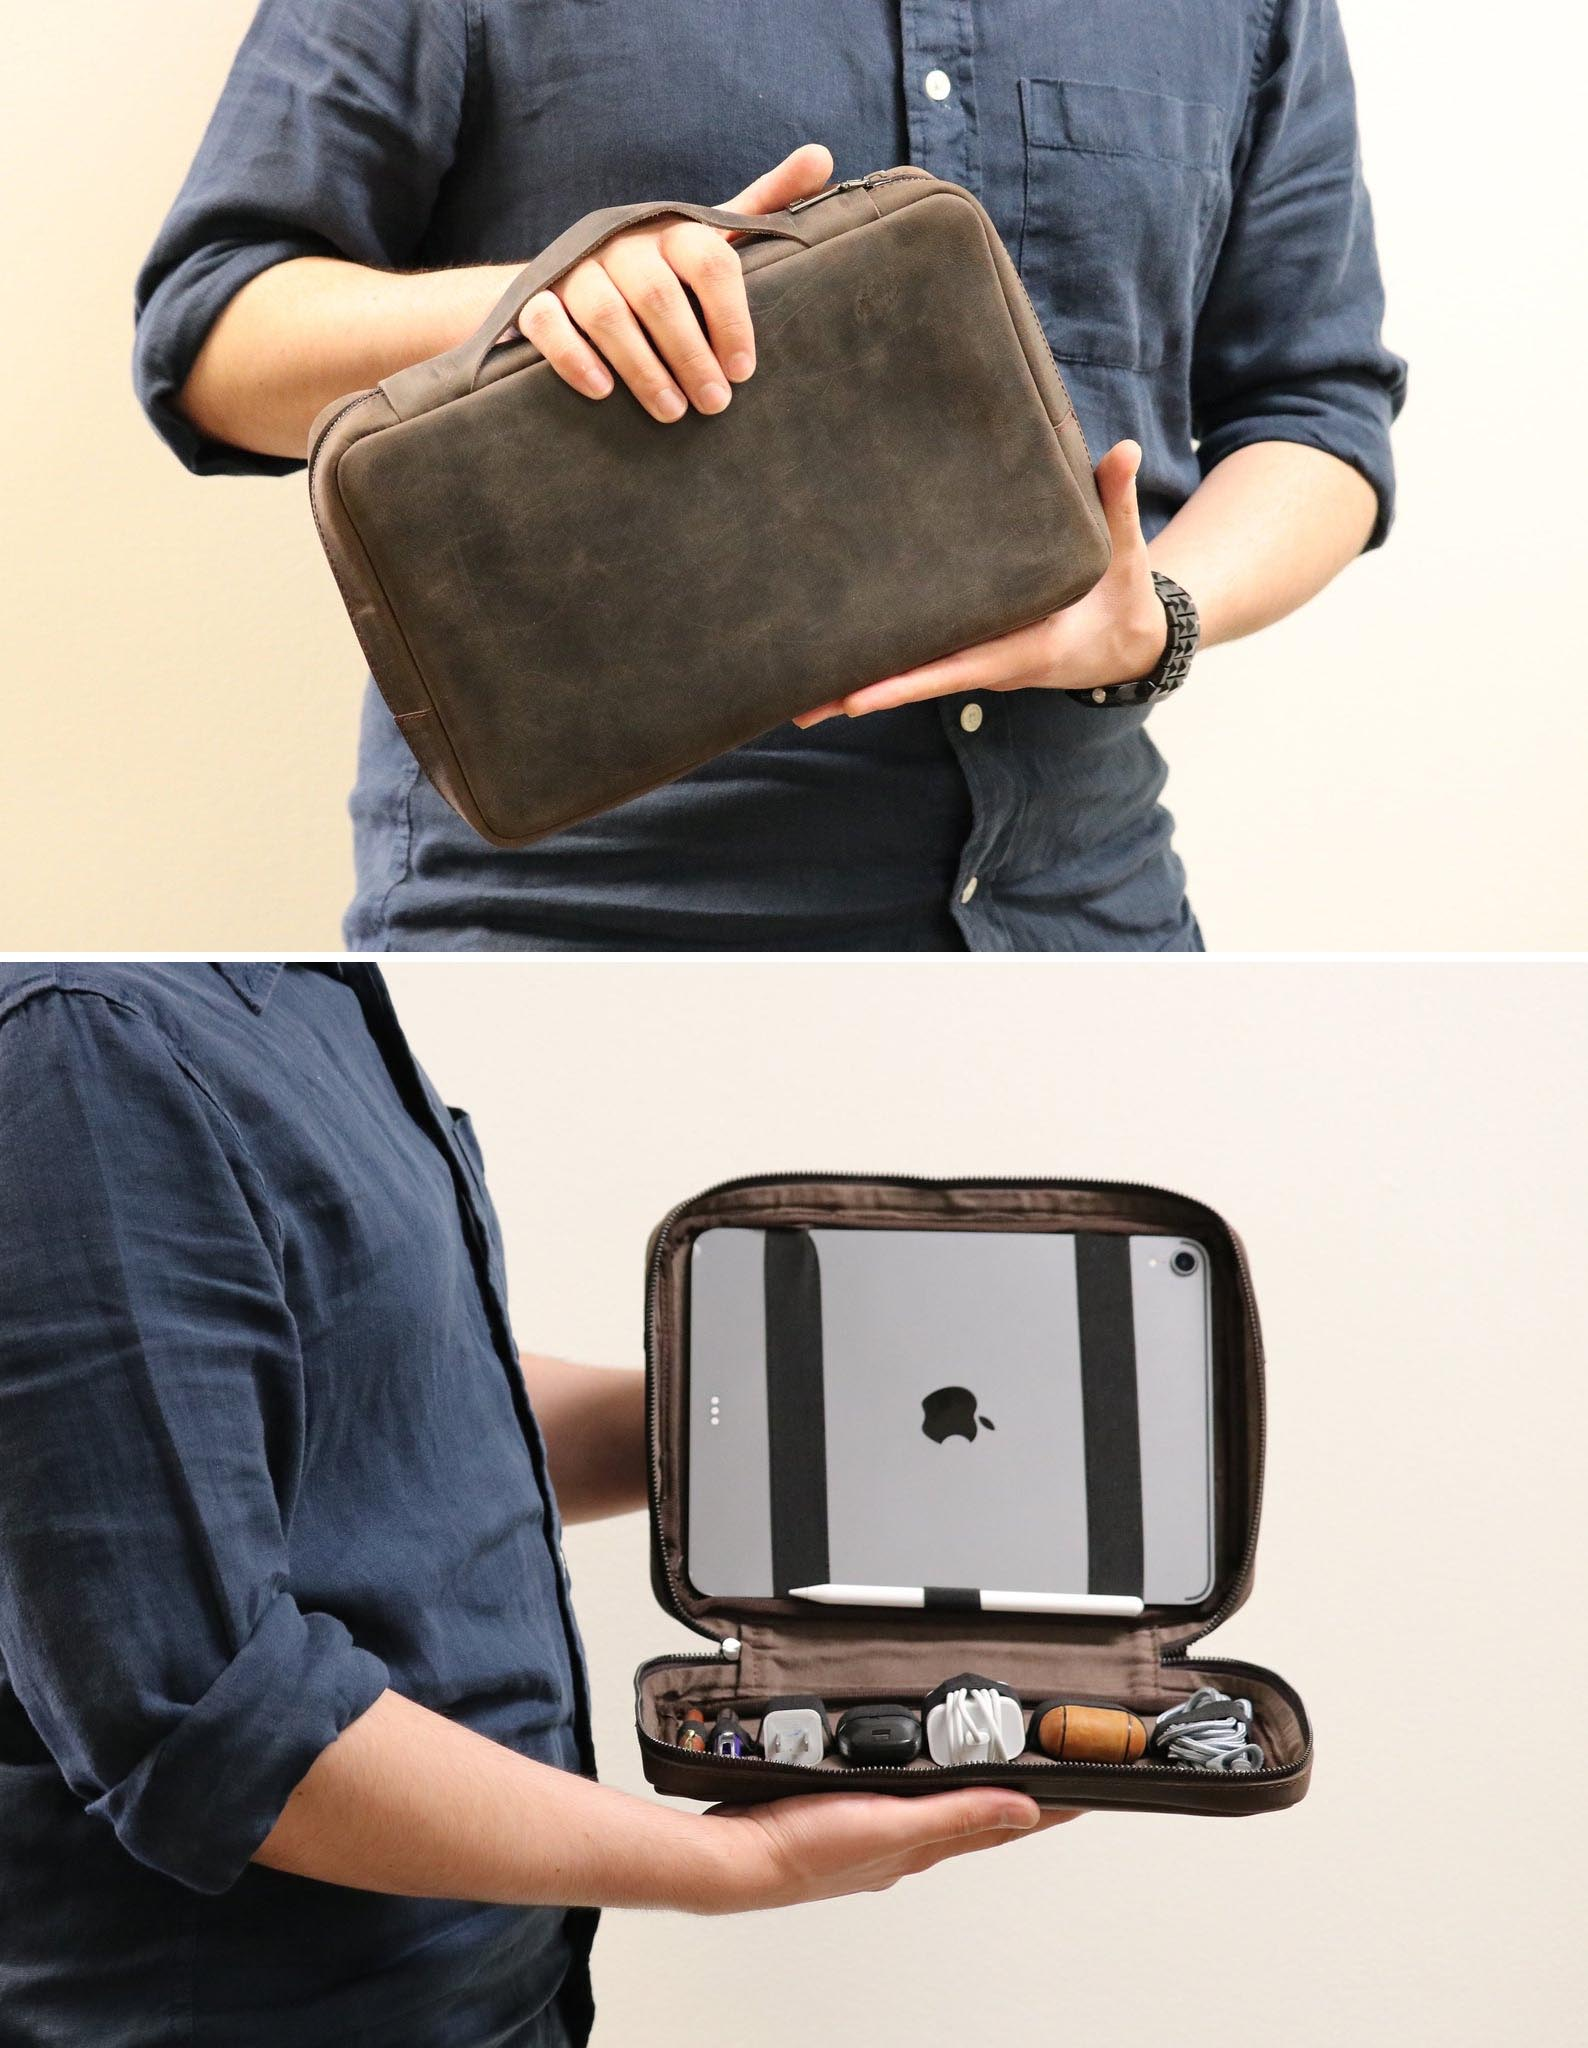 Gift Idea - Leather Travel Tech Organizer